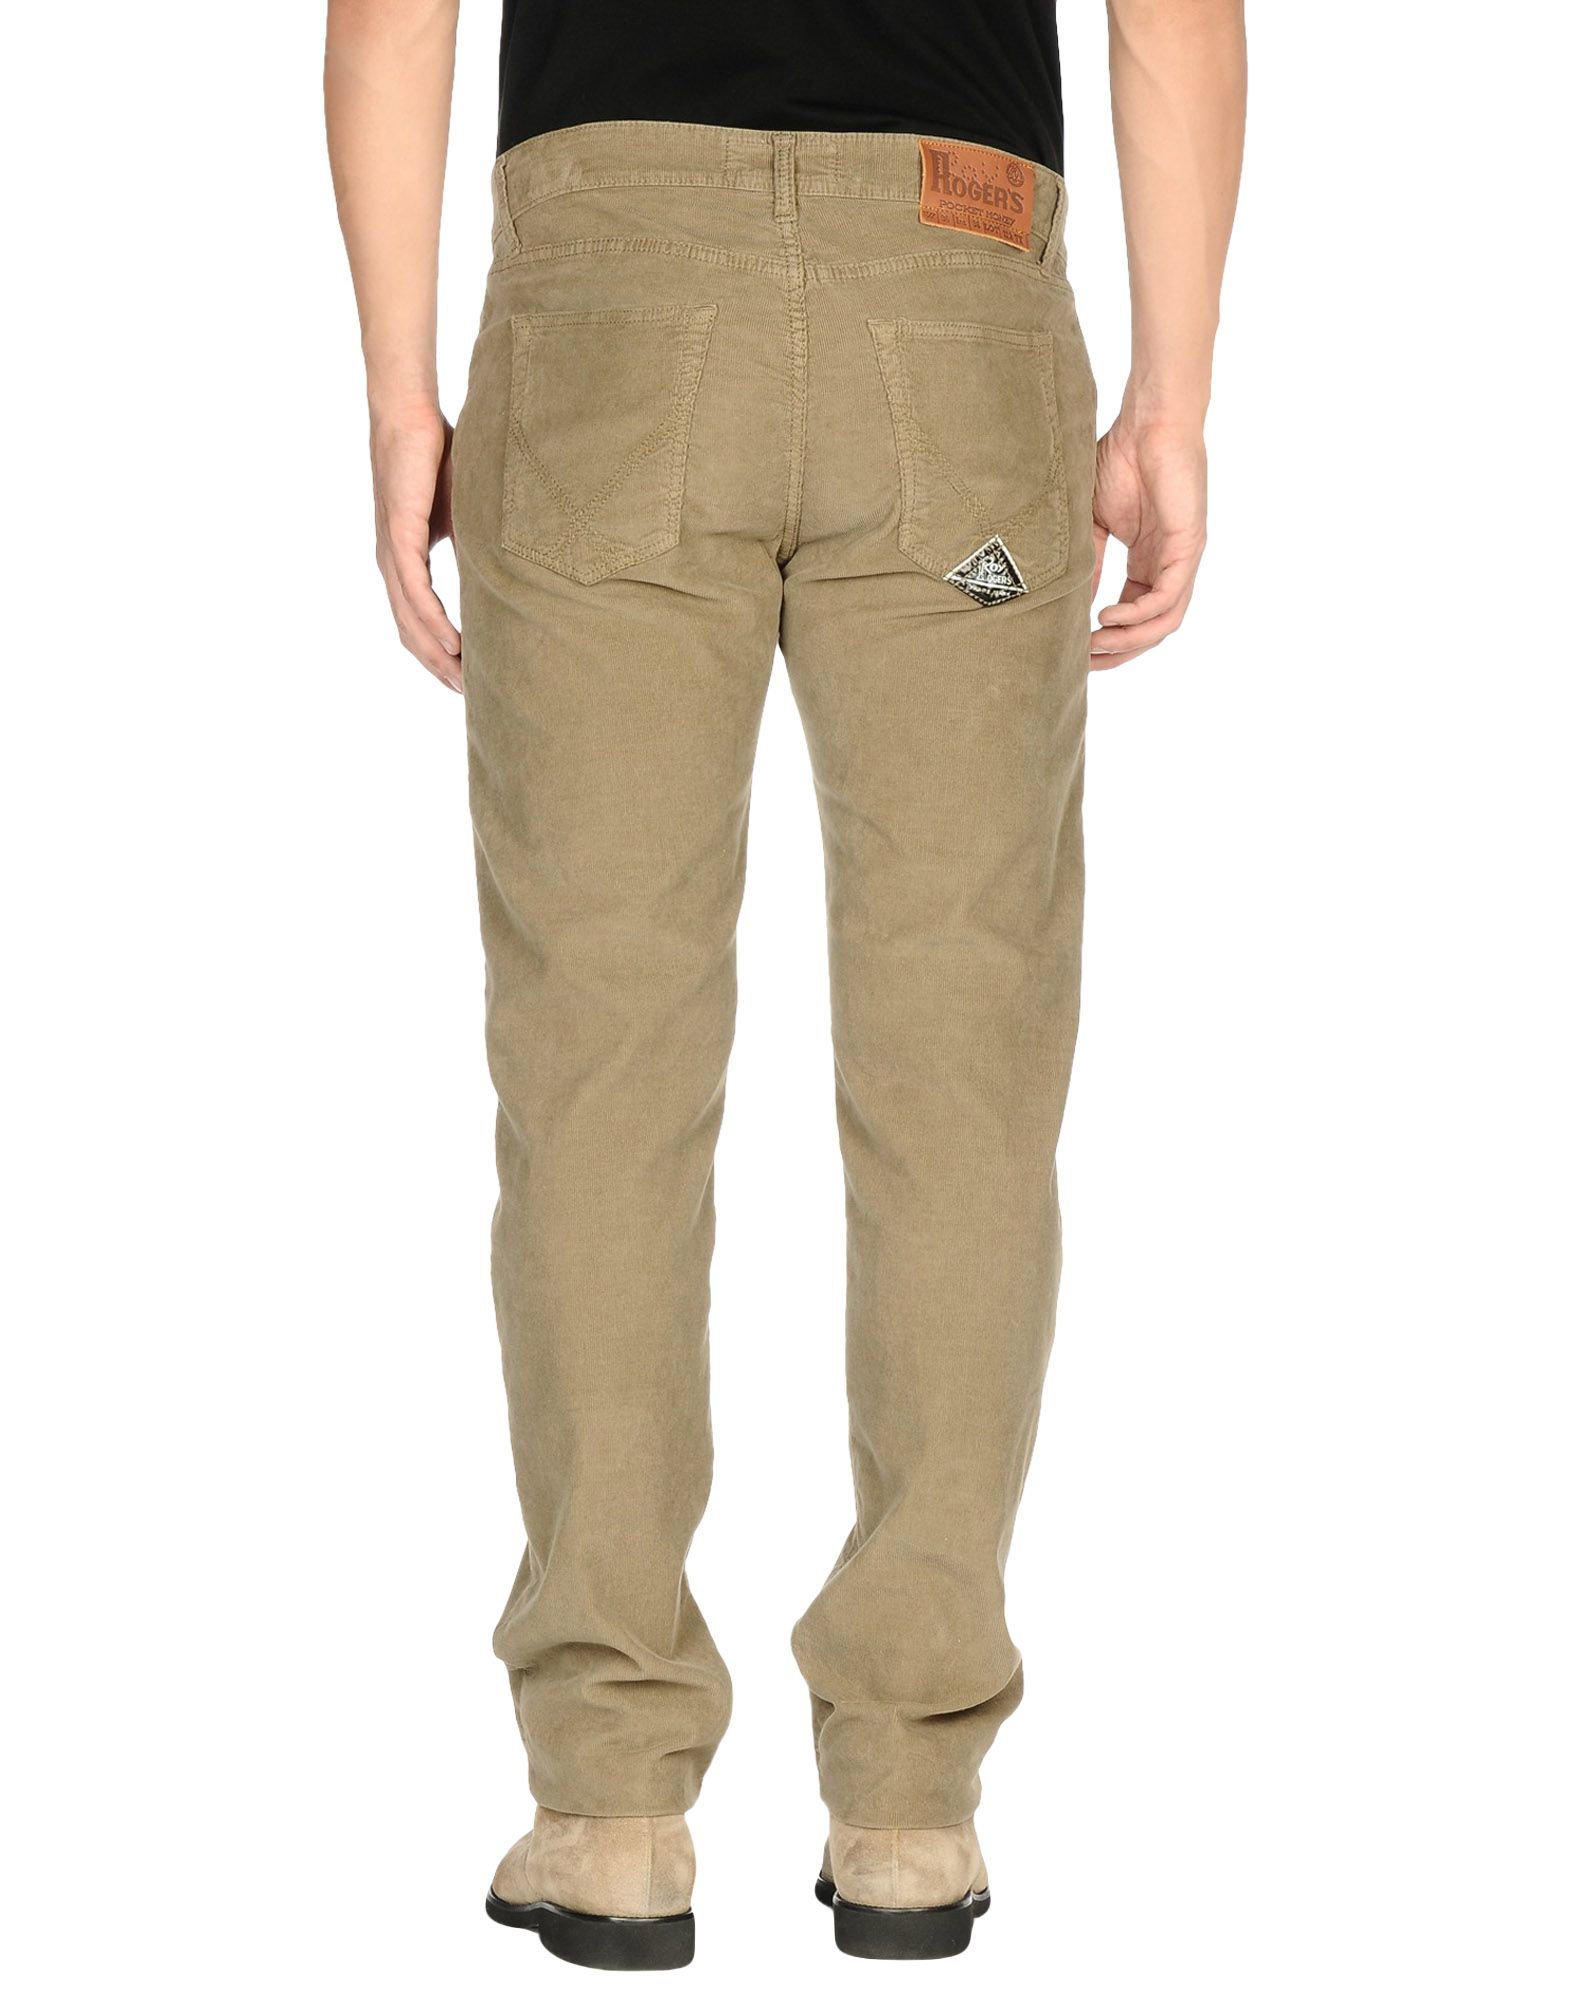 Roy Rogers Casual Trouser In Natural For Men Lyst